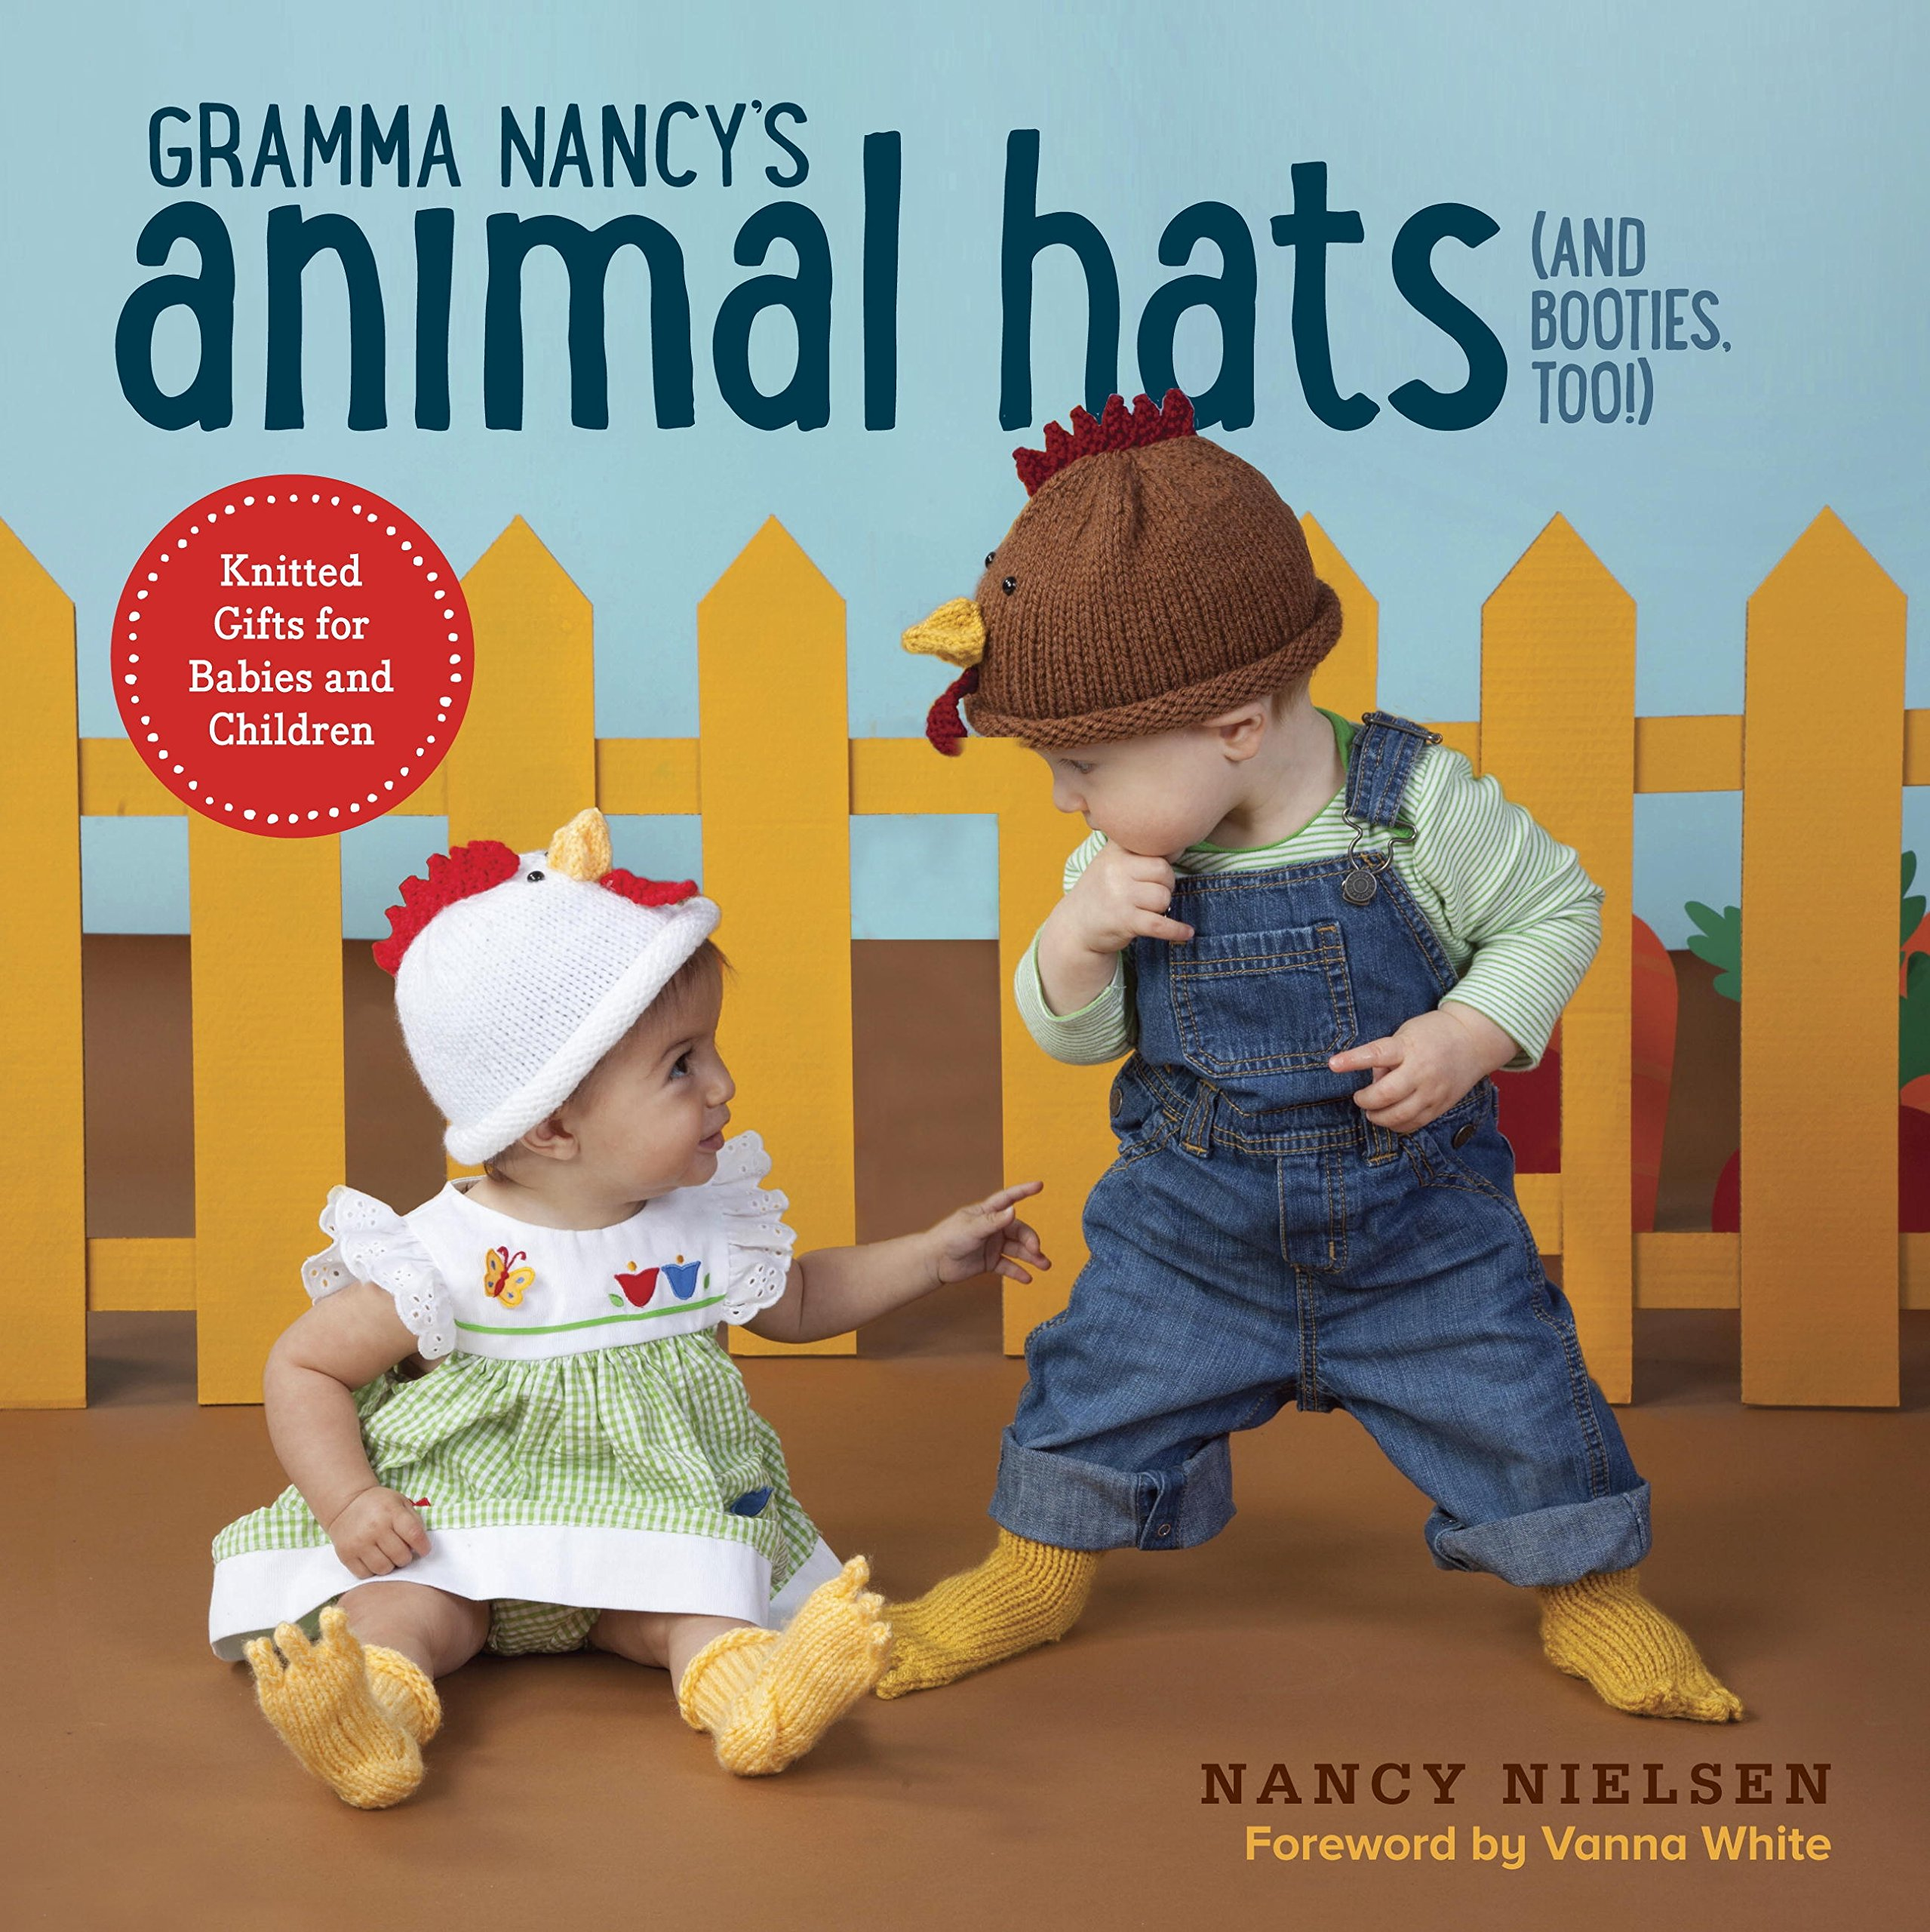 gramma-nancy-s-animal-hats-and-booties-too-knitted-gifts-for-babies-and-children